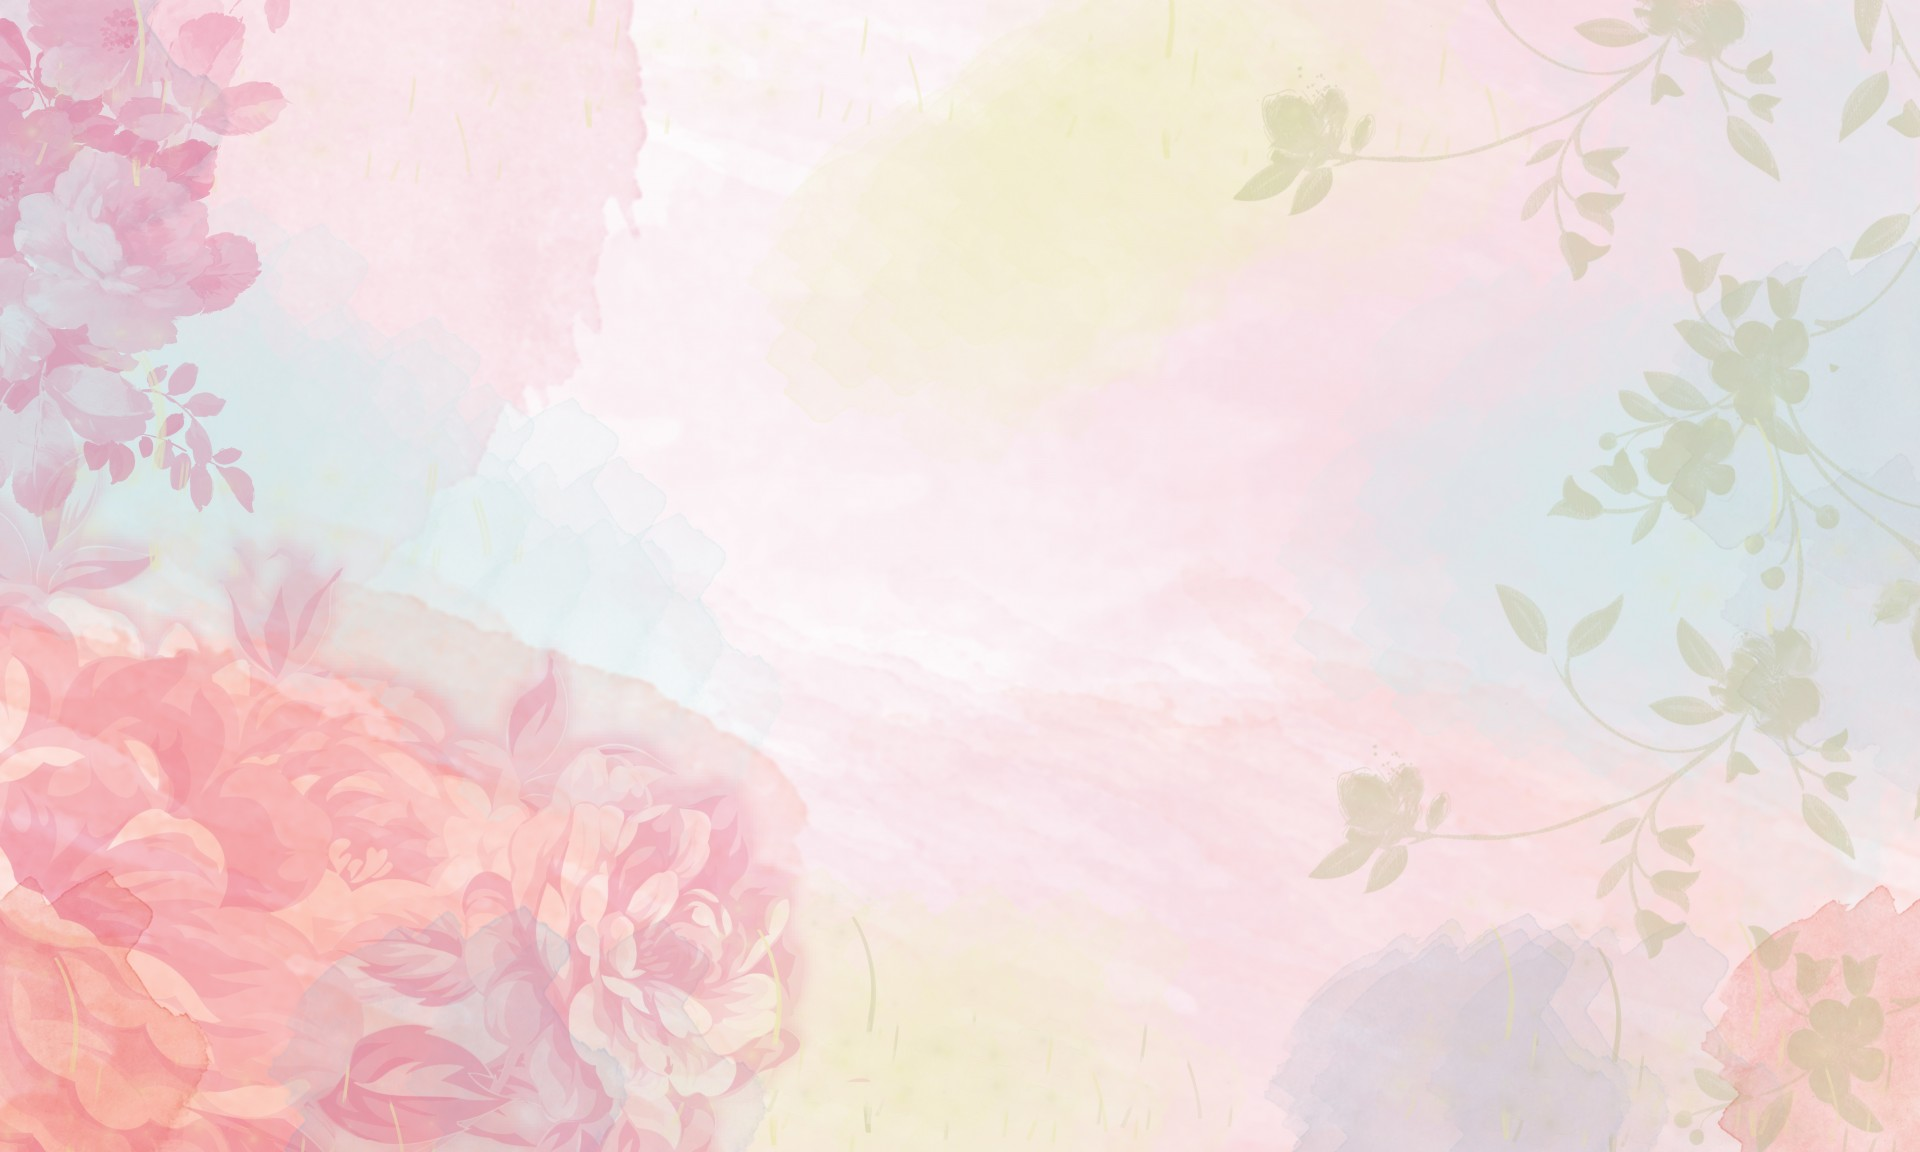 Floral Desktop Wallpaper Watercolor Wengerluggagesave